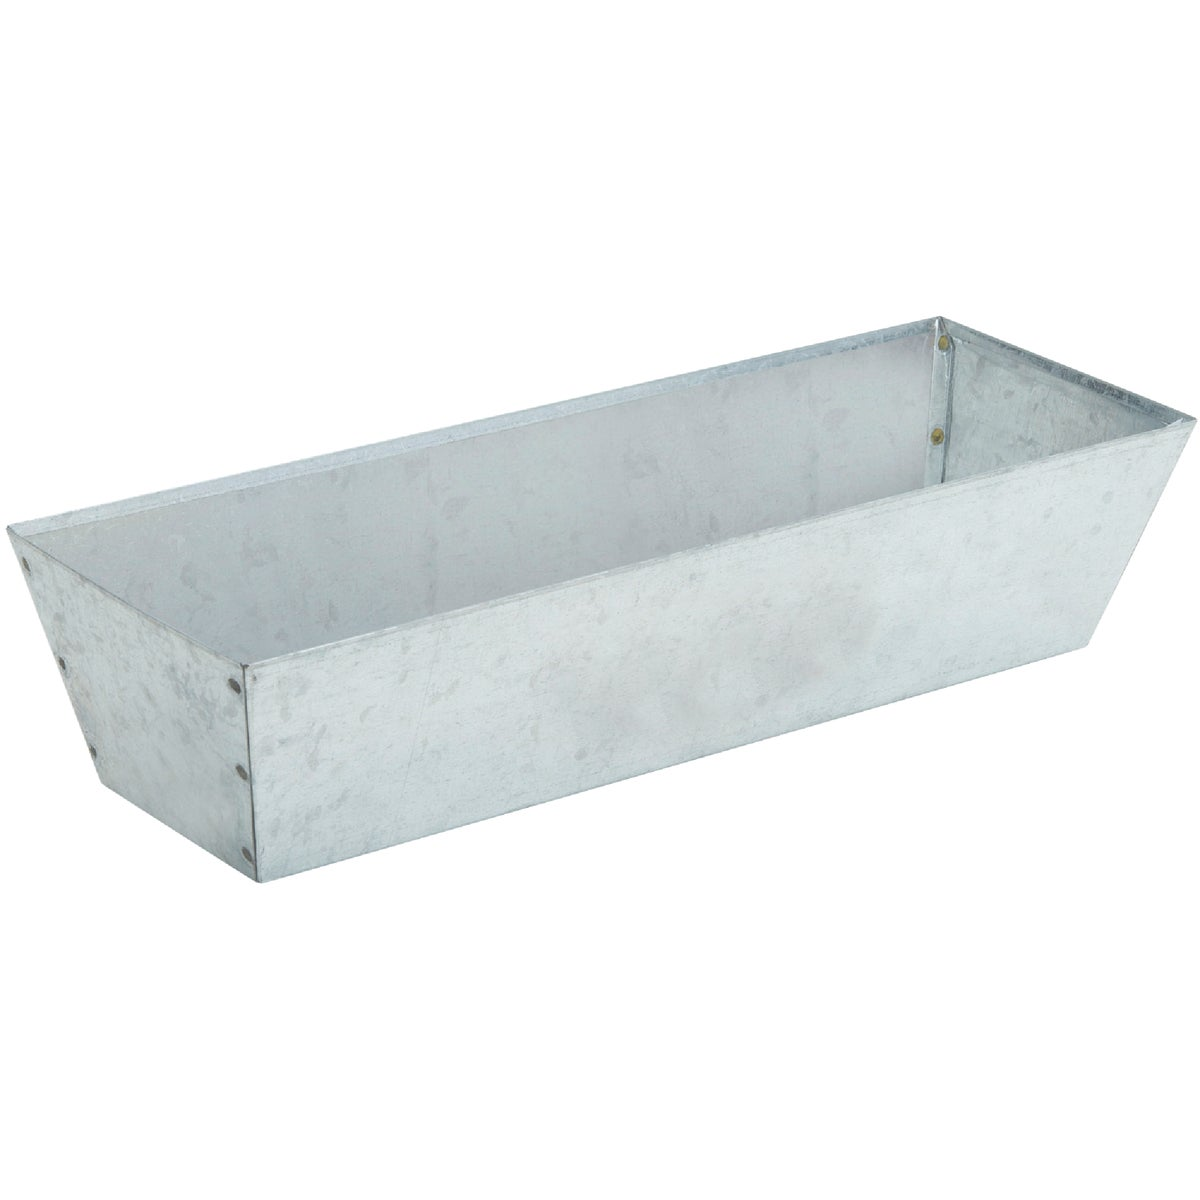 "12"" GALVANIZED MUD PAN"